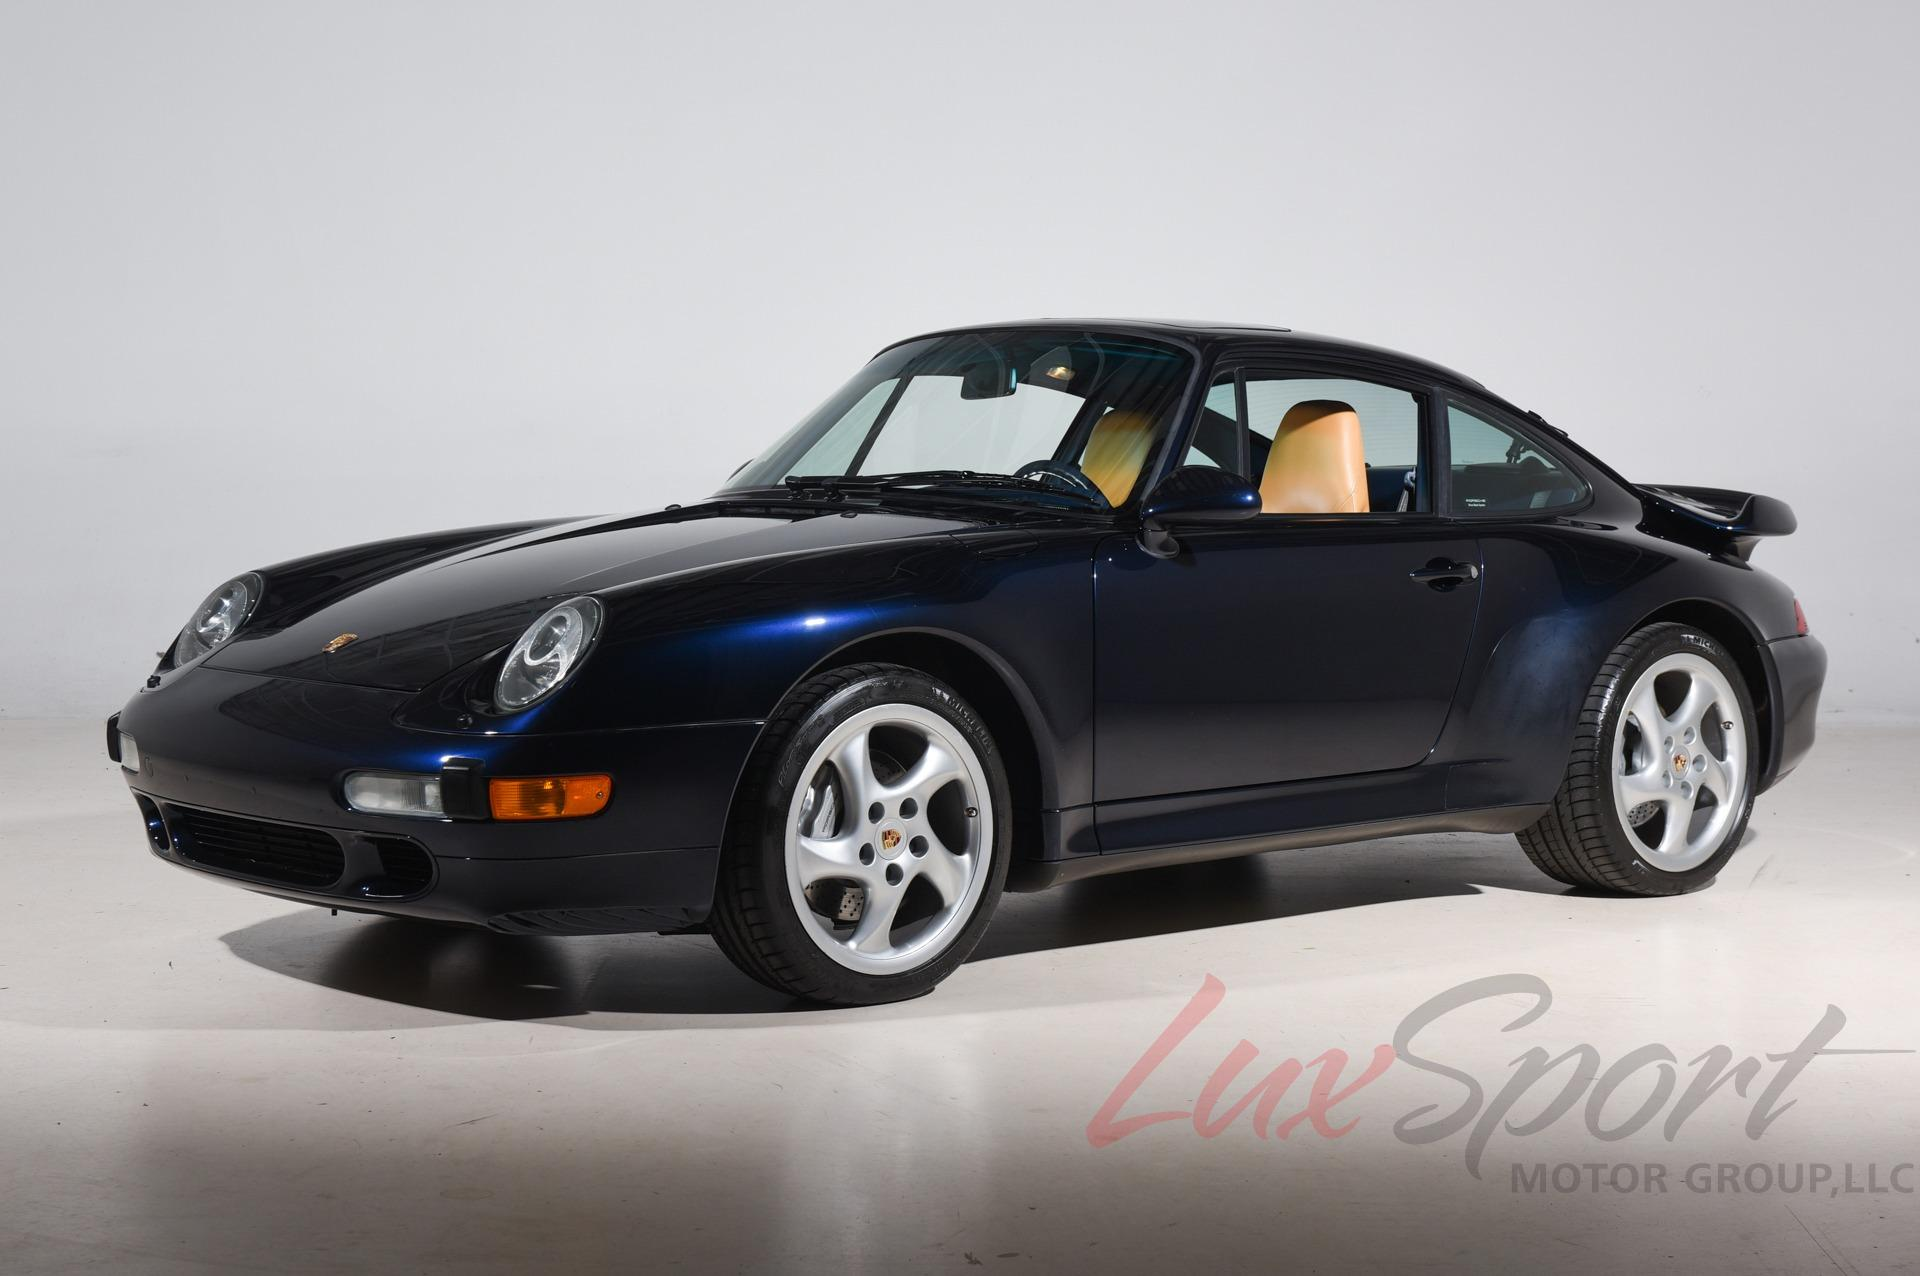 1996 Porsche 993 Twin Turbo Coupe Stock # 1996189 for sale